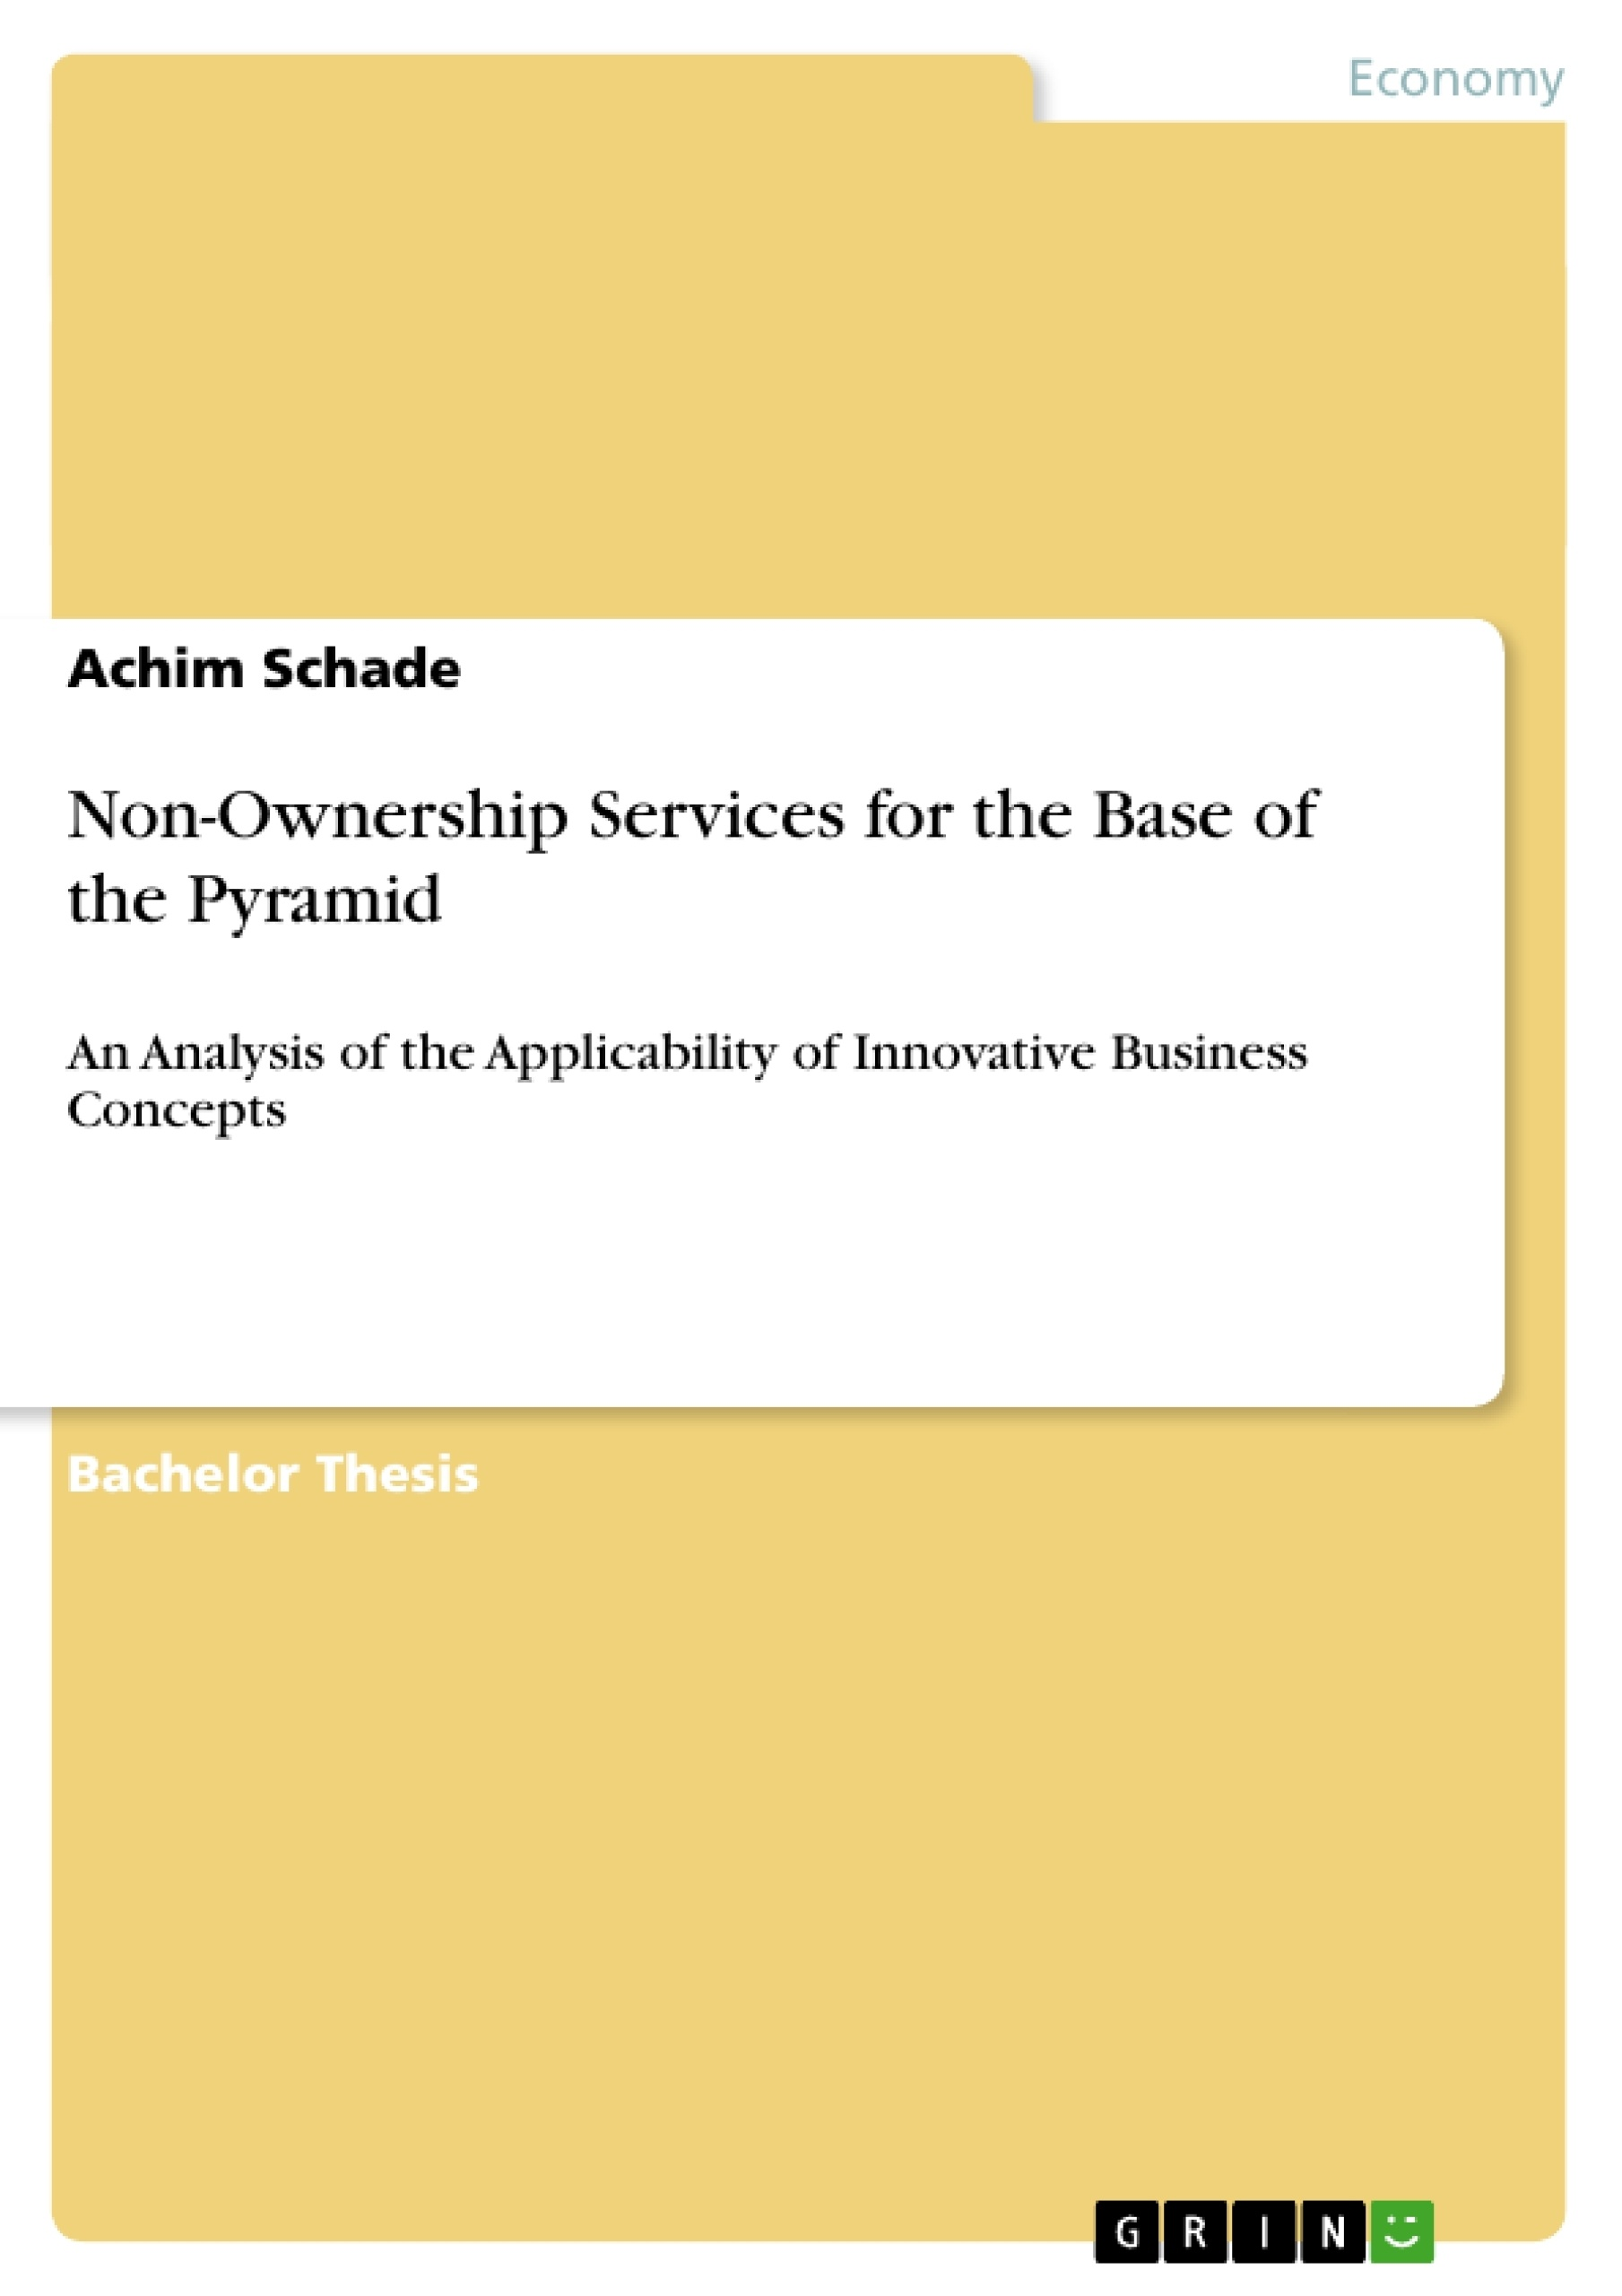 non ownership services for the base of the pyramid publish your non ownership services for the base of the pyramid publish your master s thesis bachelor s thesis essay or term paper